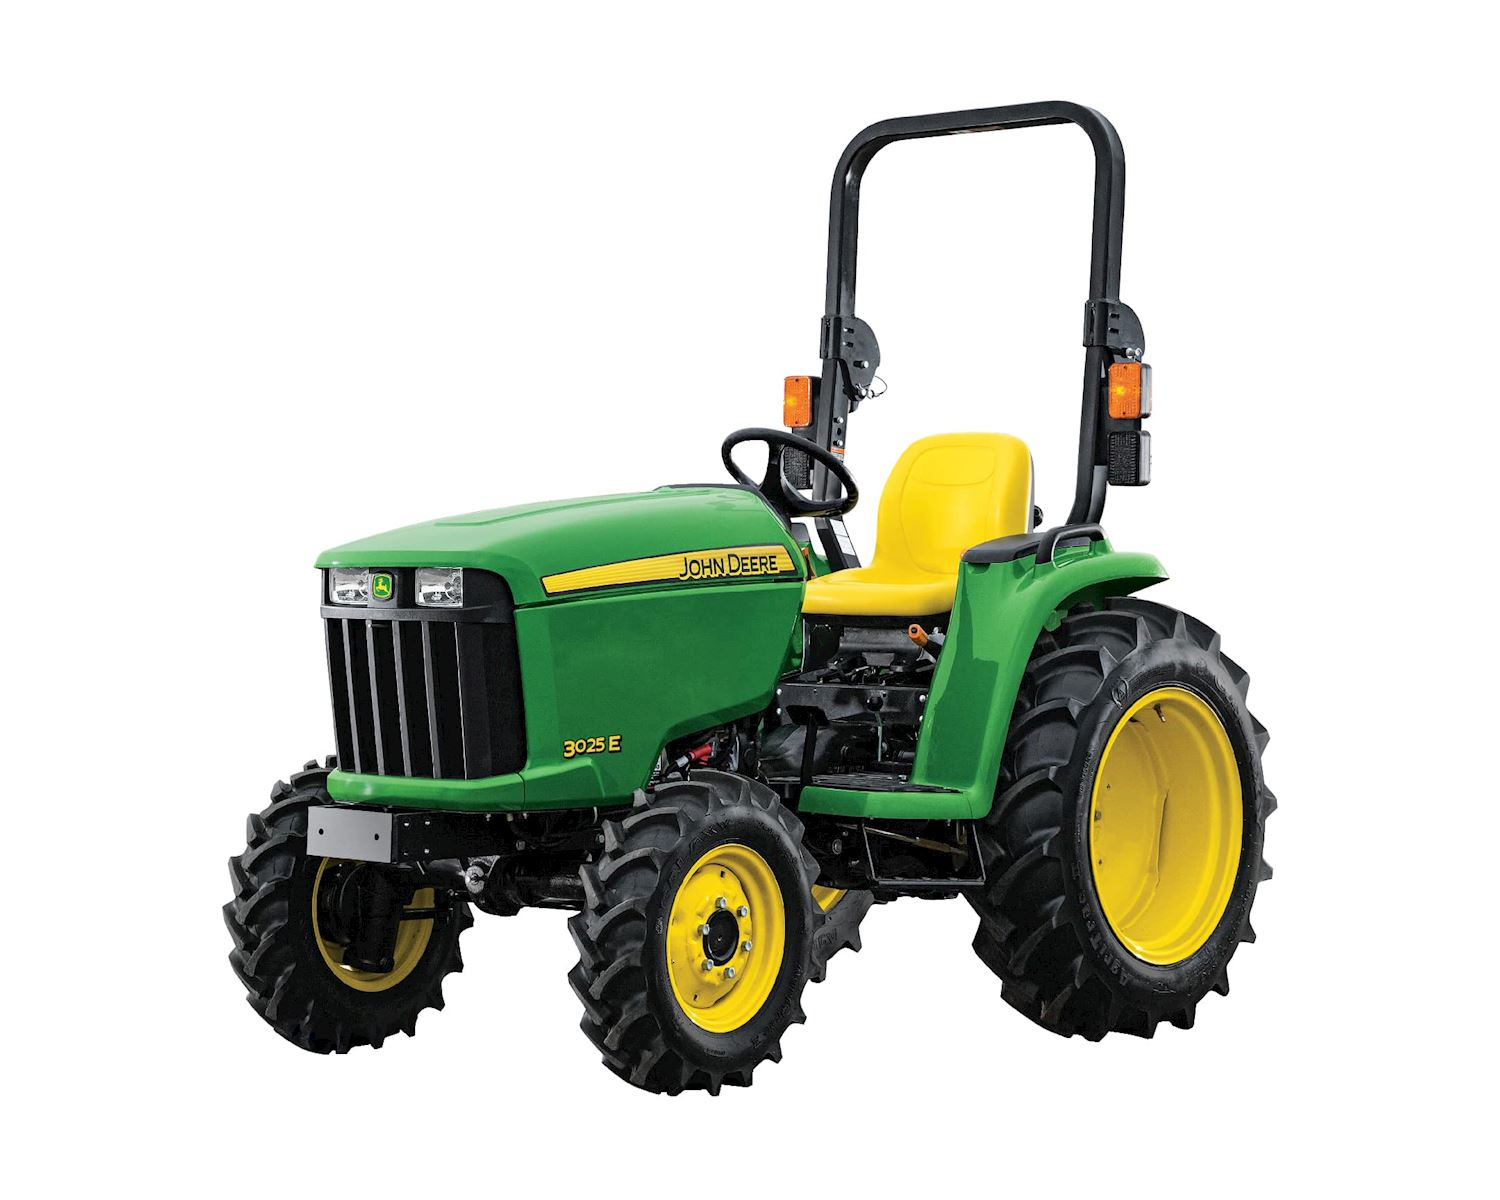 3 series john deere compact tractor for sale